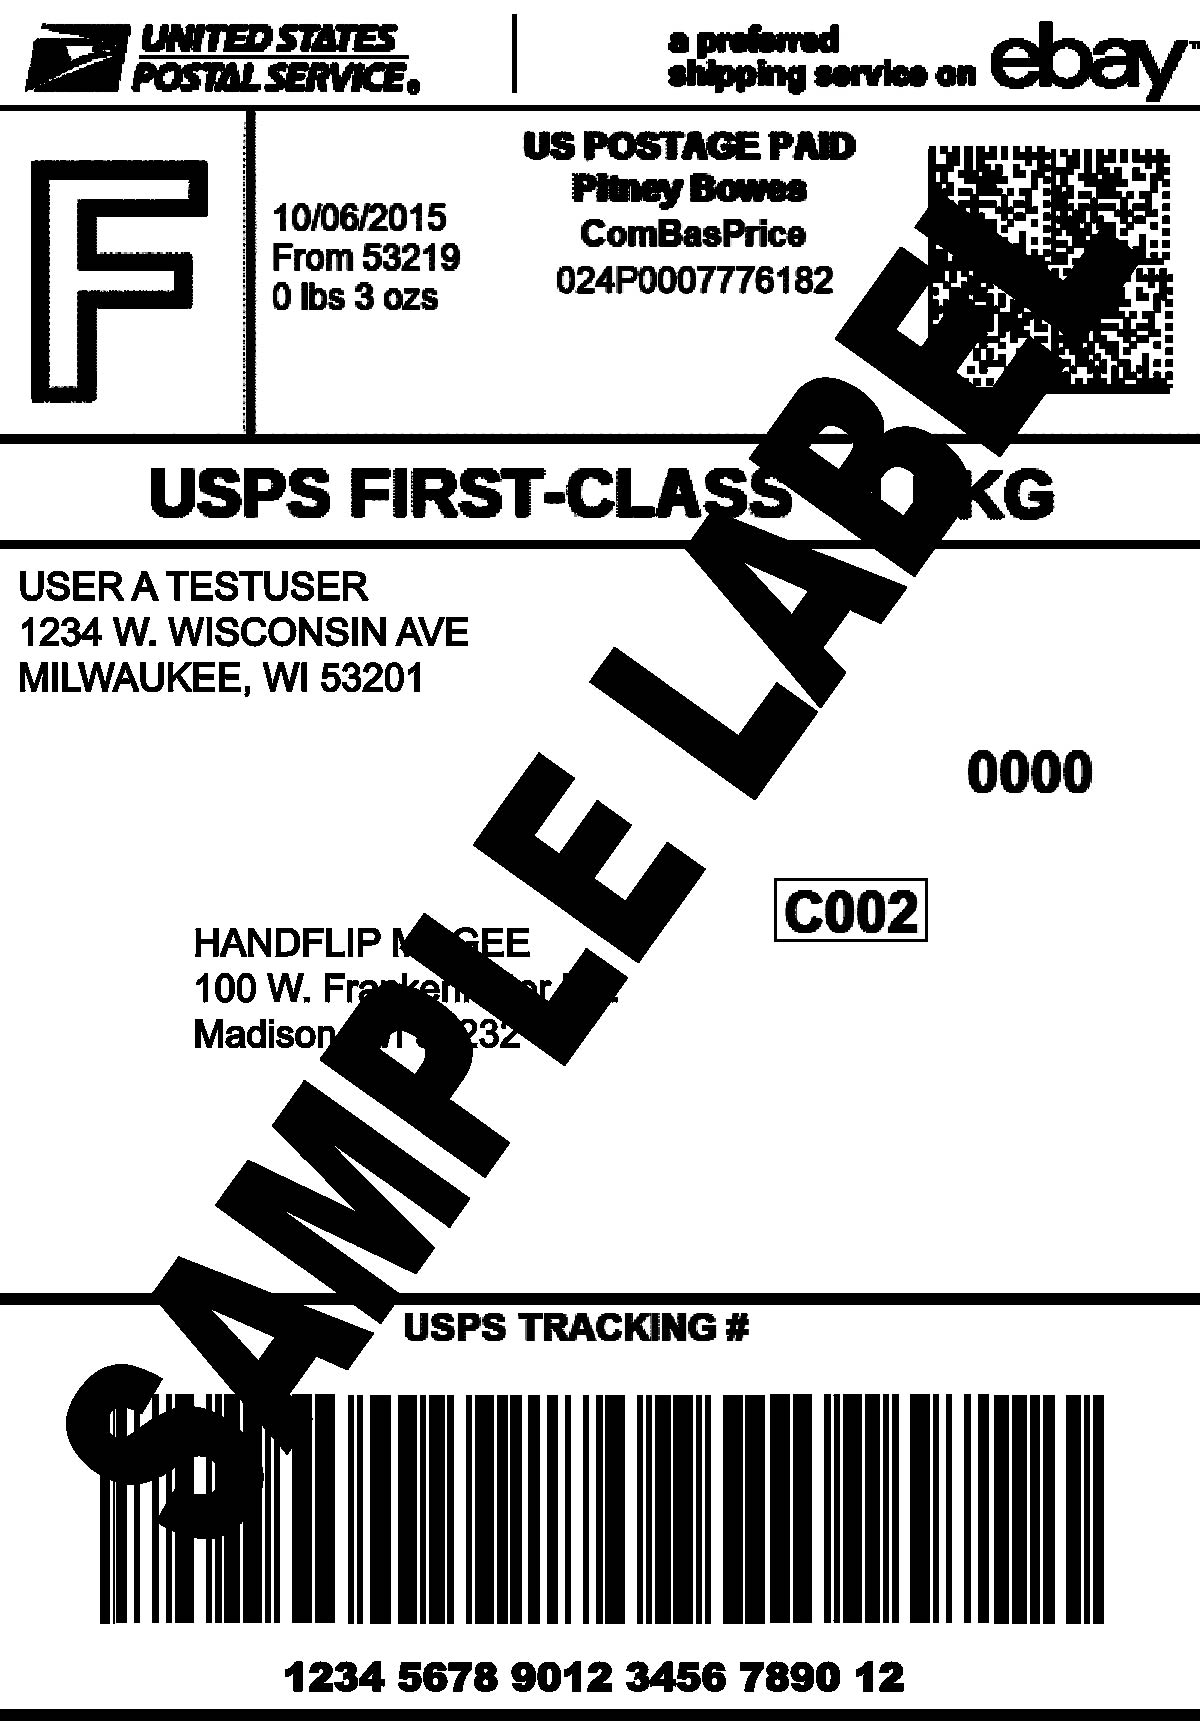 Thermal Printer Test - Shipping Label - Too Heavy